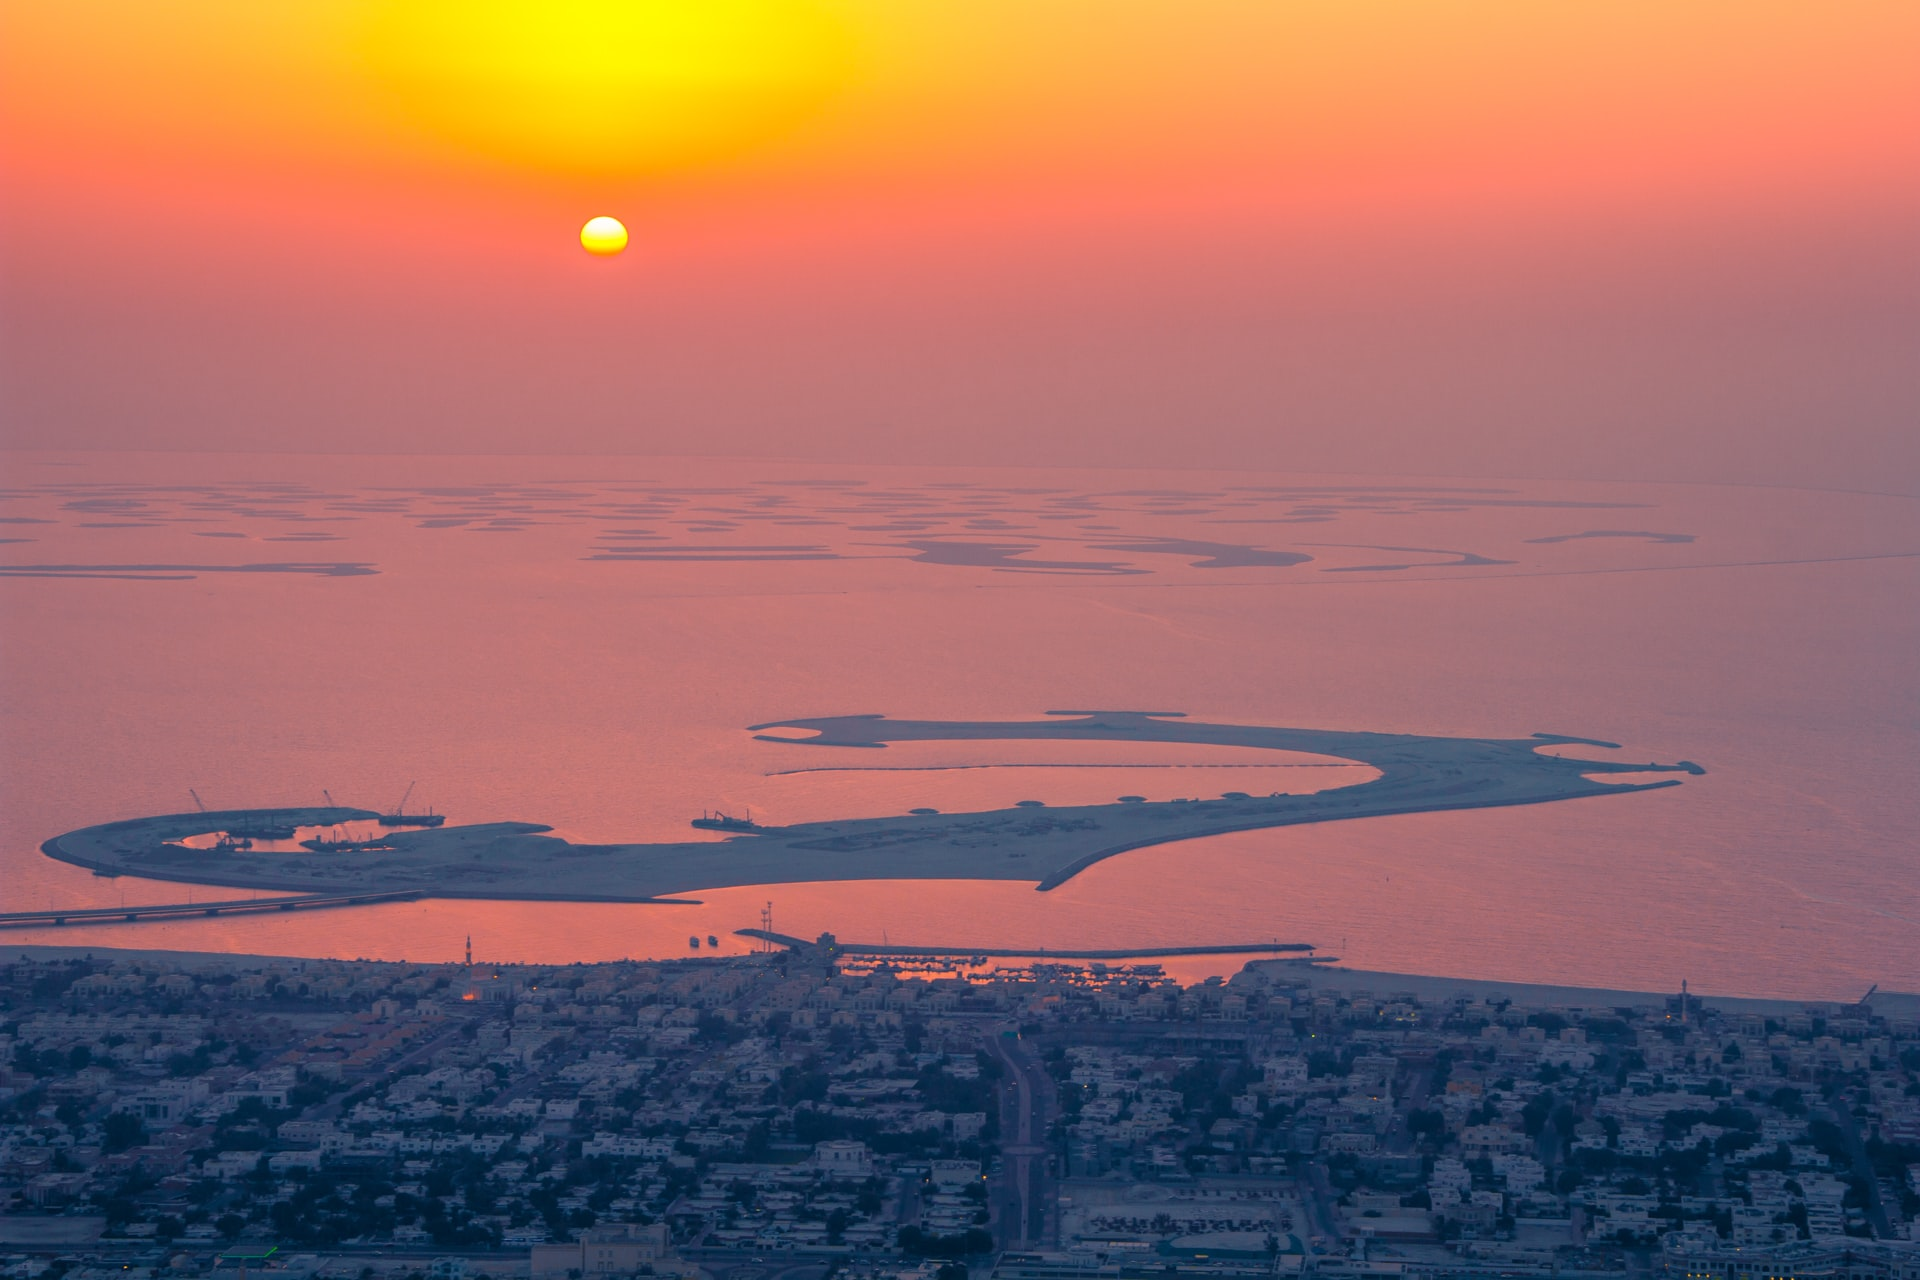 An abstract-shaped artificial island on a body of water during sunrise